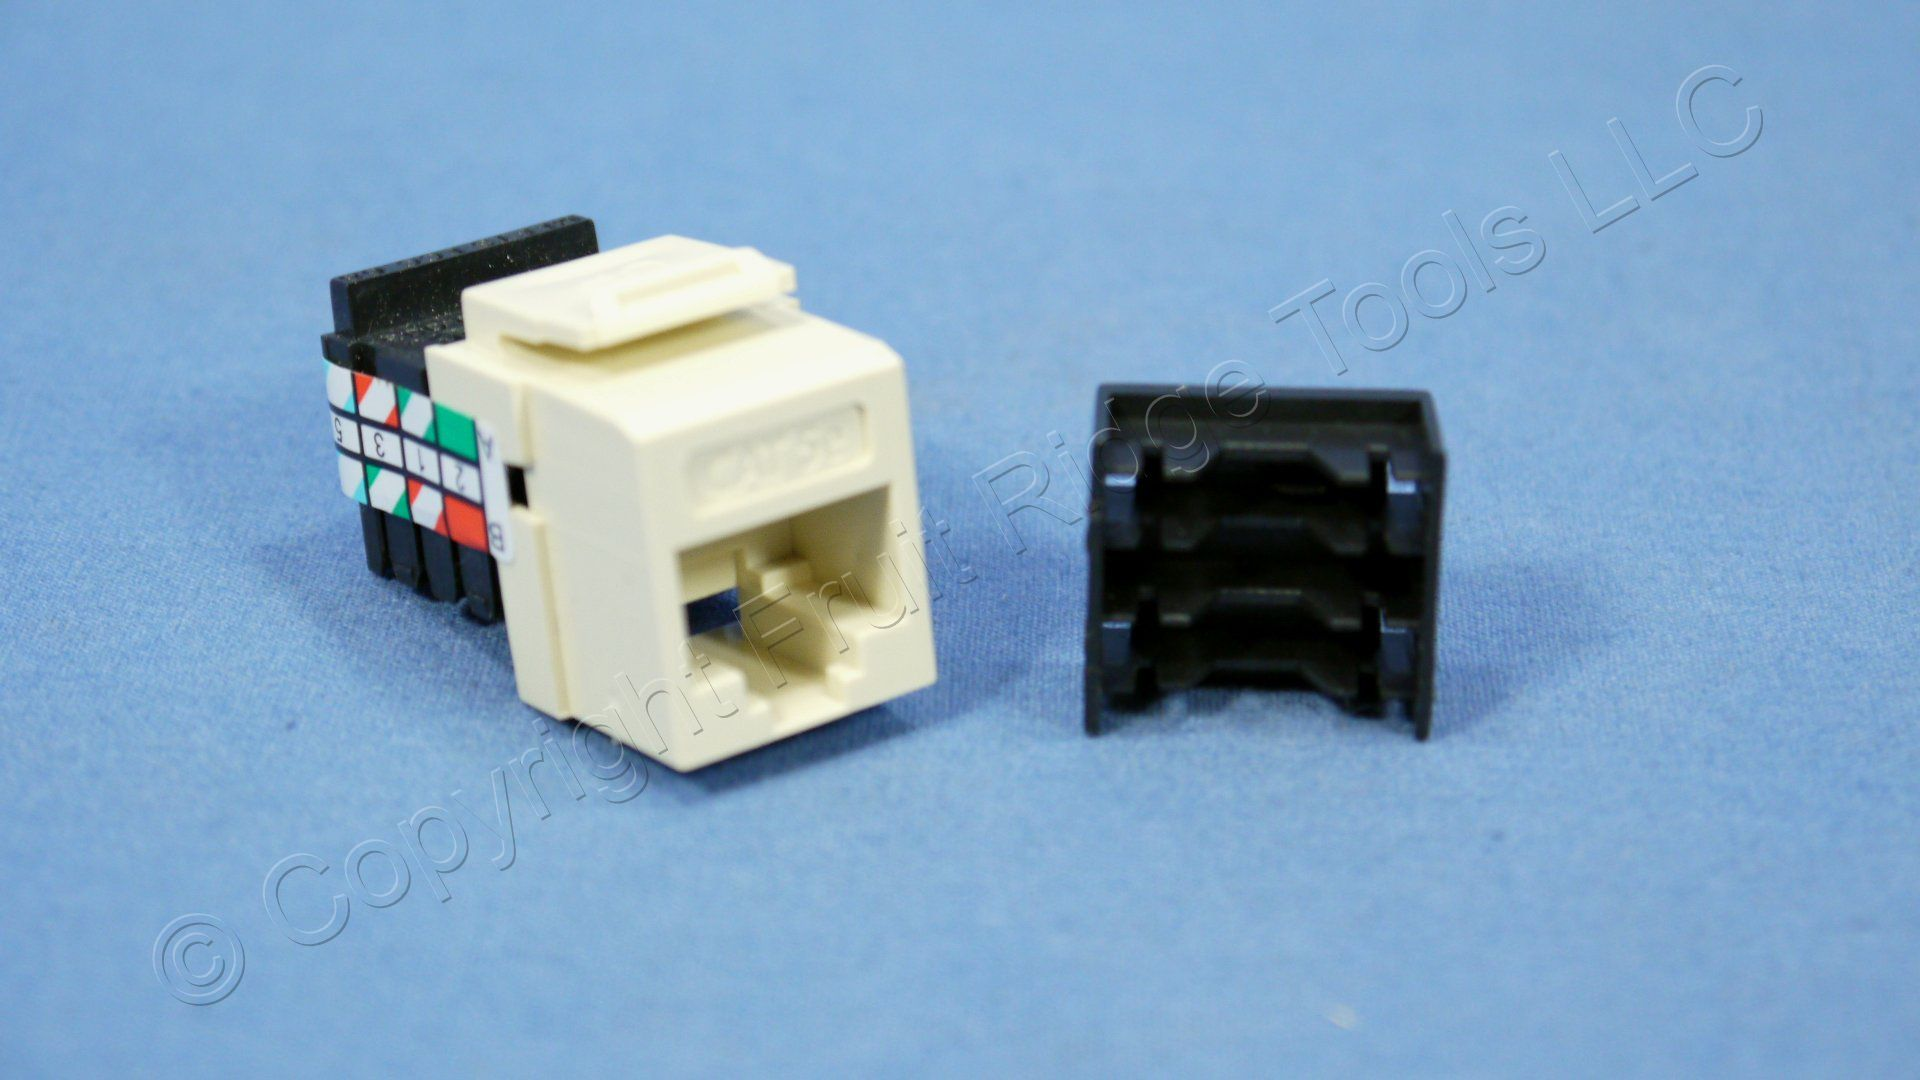 Leviton Almond Gigamax Quickport Cat 5e Jack Cat5e Rj45 8p8c Wiring Category 5g108 A